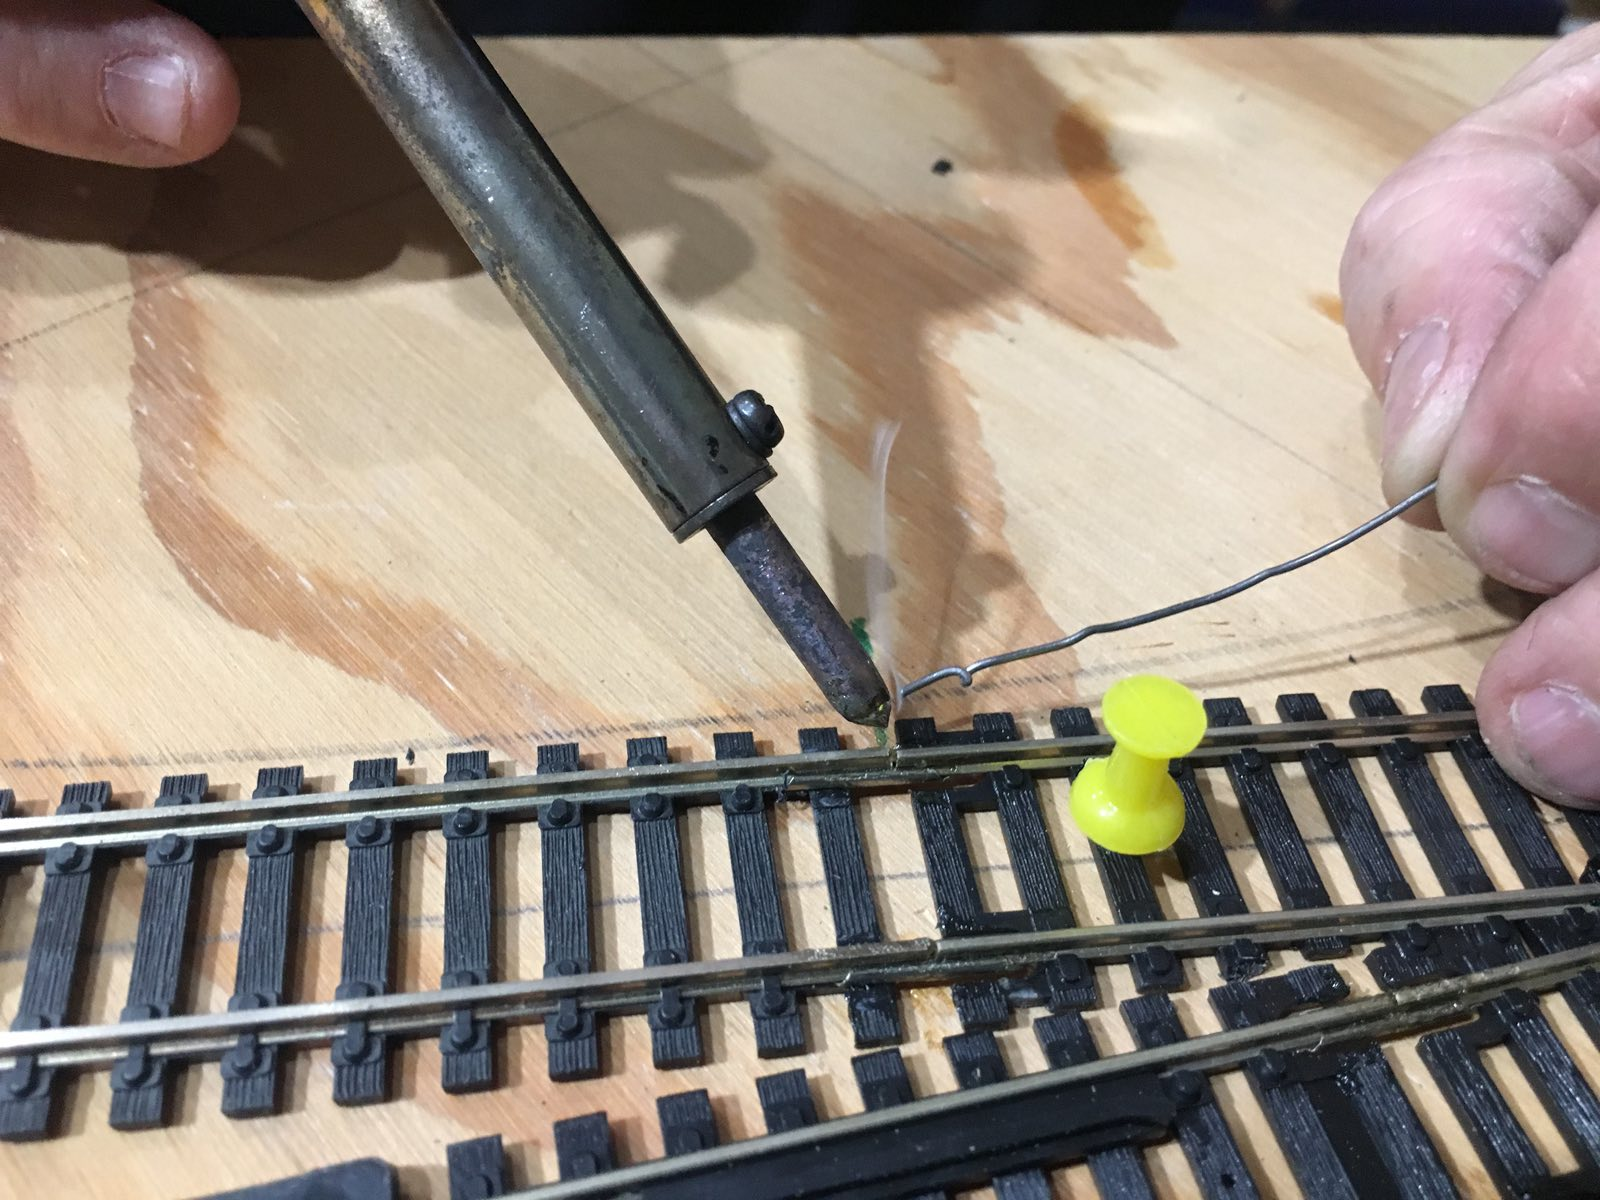 Johns Alaska Railroad Ho Scale Layout V20 Wiring Switches An Ice Storm Came Through The Area And We Lost Power At 903 Pm Workers Never Missed A Beat Continued Their Tasks By Flashlight